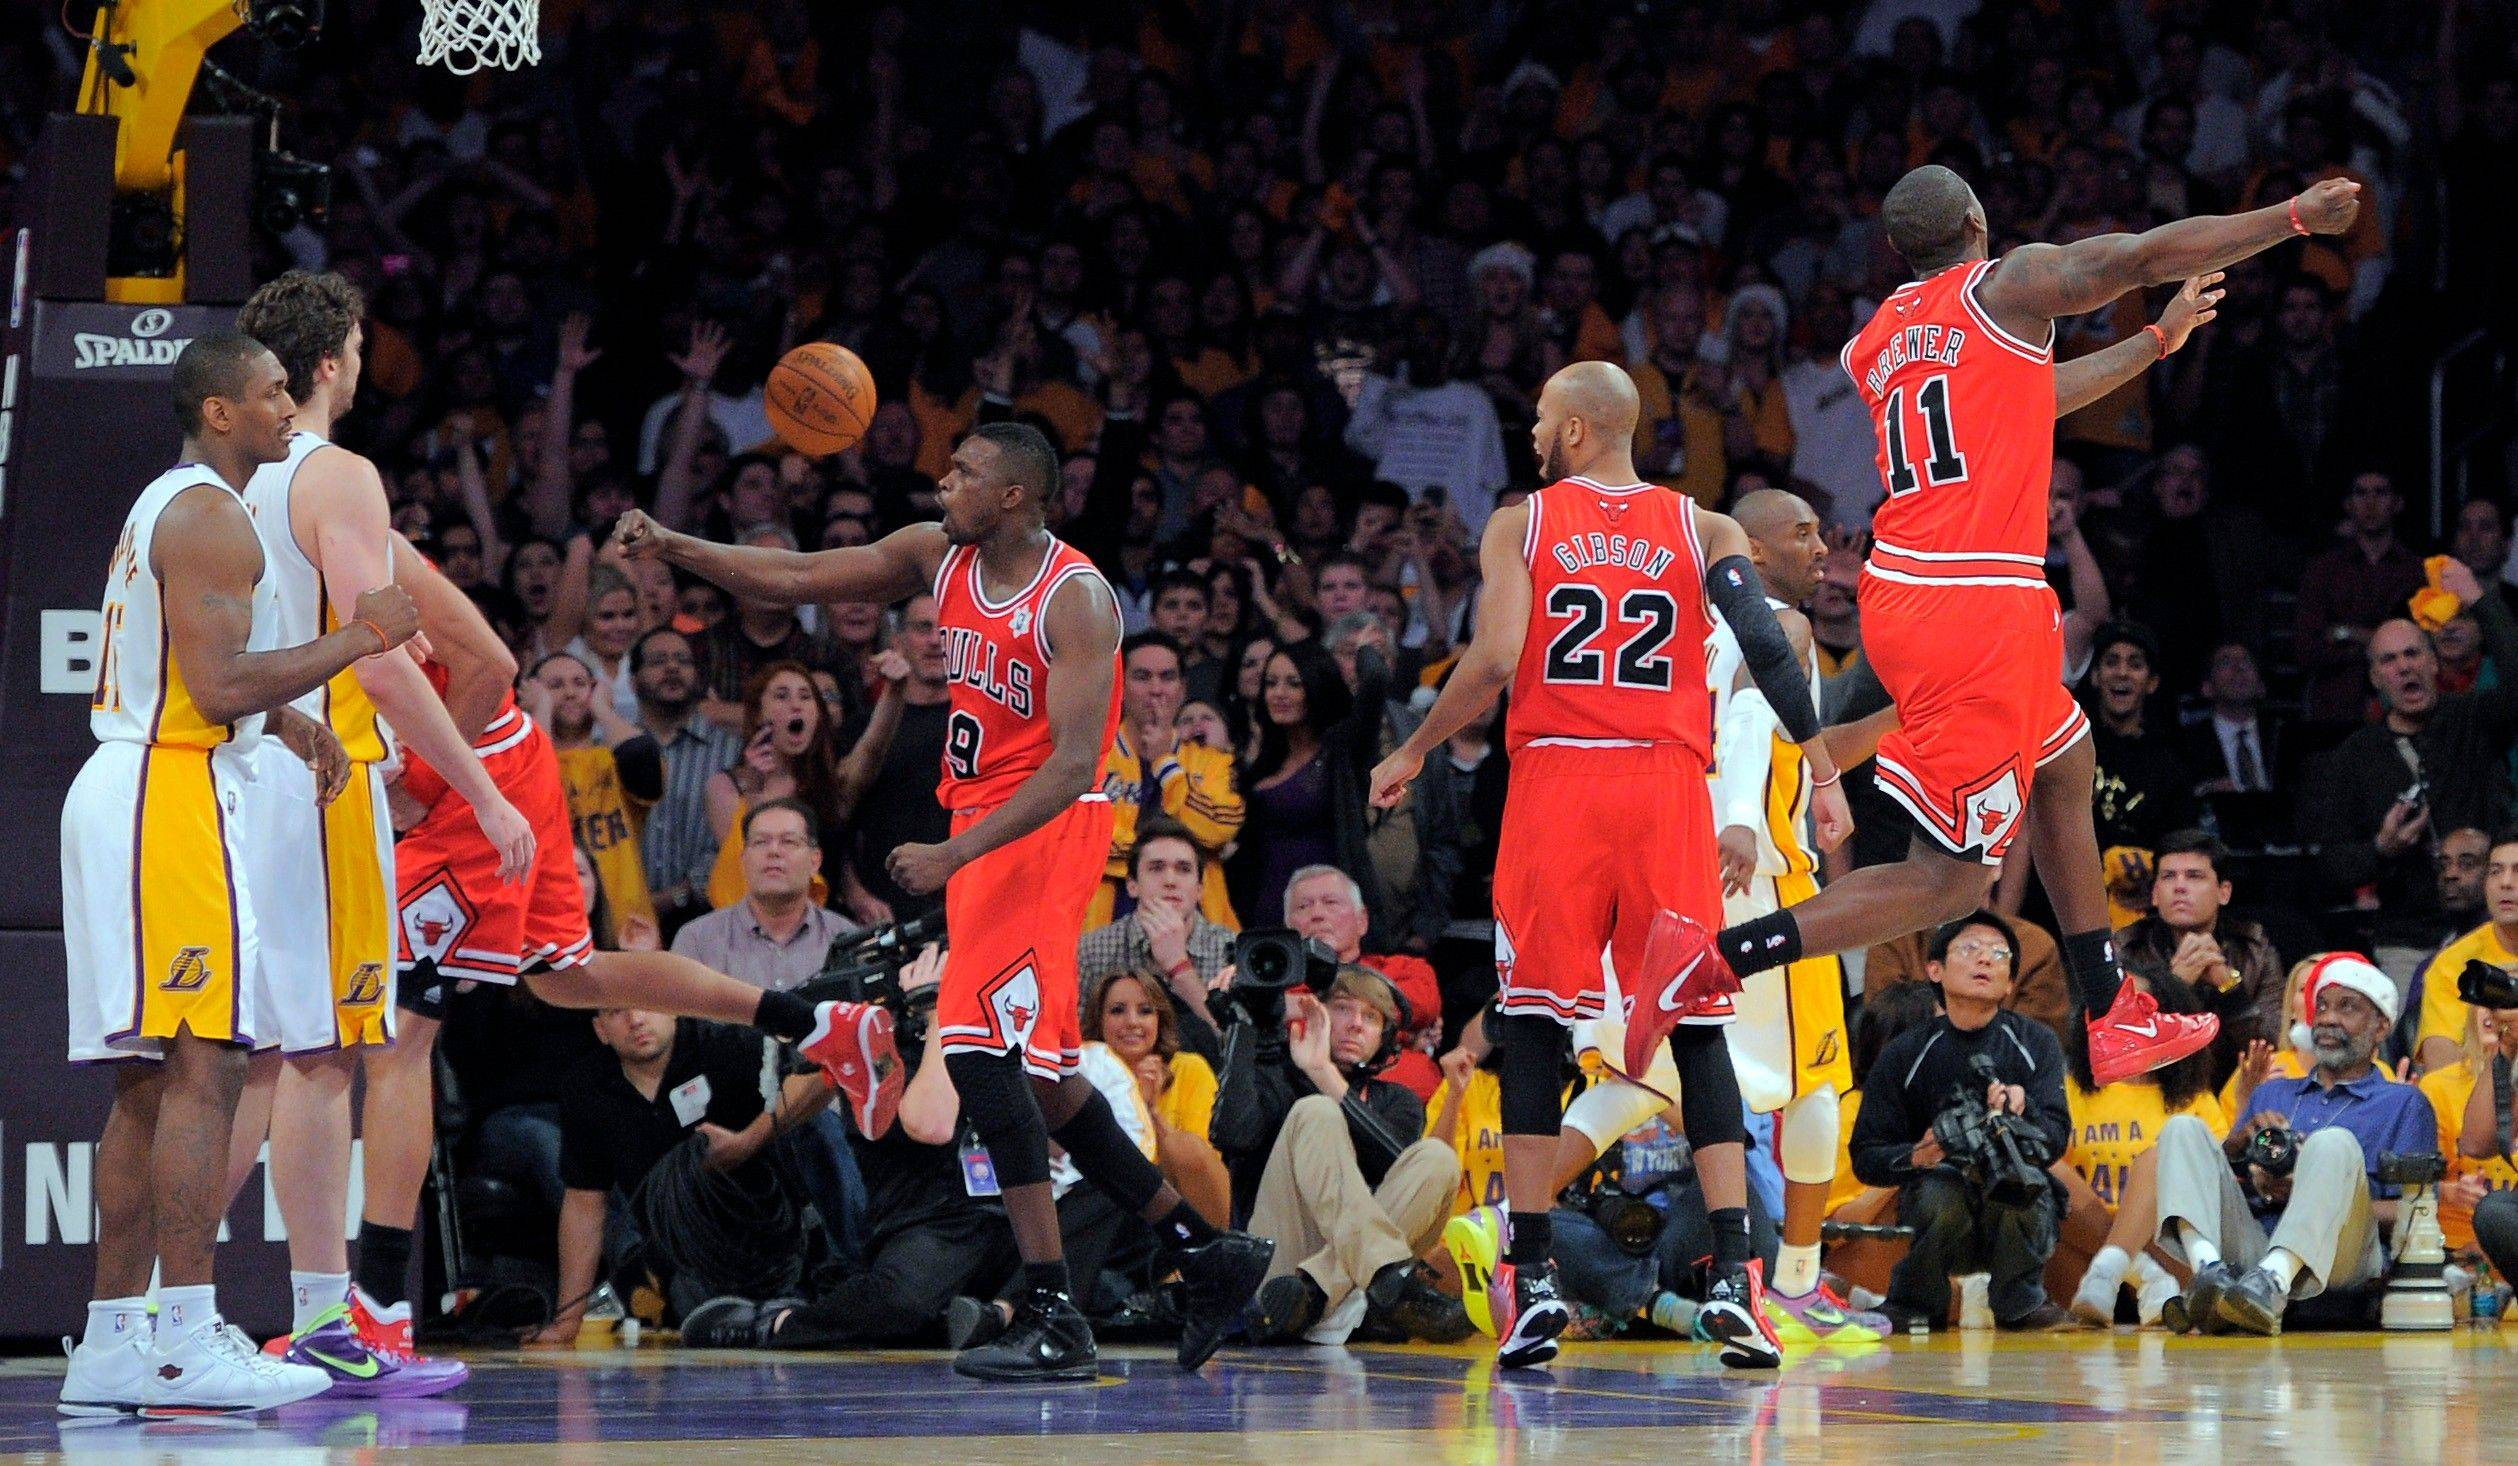 The Bulls' Luol Deng (9), Taj Gibson, (22) and Ronnie Brewer (11) celebrate as time runs out in an 88-87 victory over the Lakers on Sunday in Los Angeles.